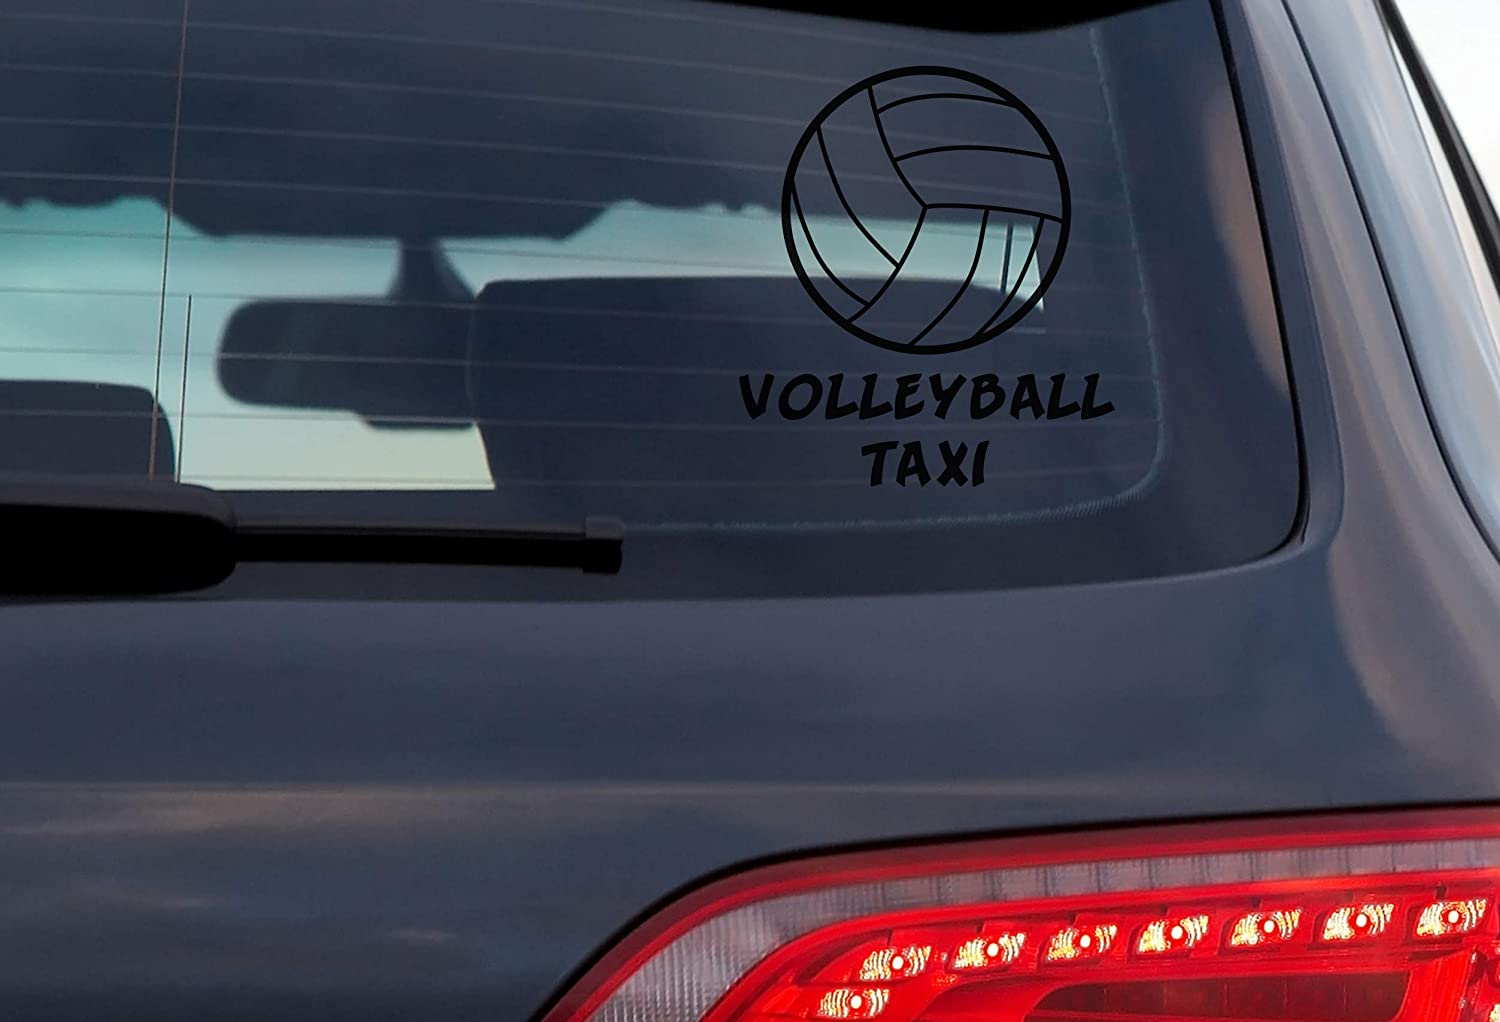 Exterior DOOMSDAYDECALS Volleyball Taxi 4 Inch Black Vinyl Decal for Car Window